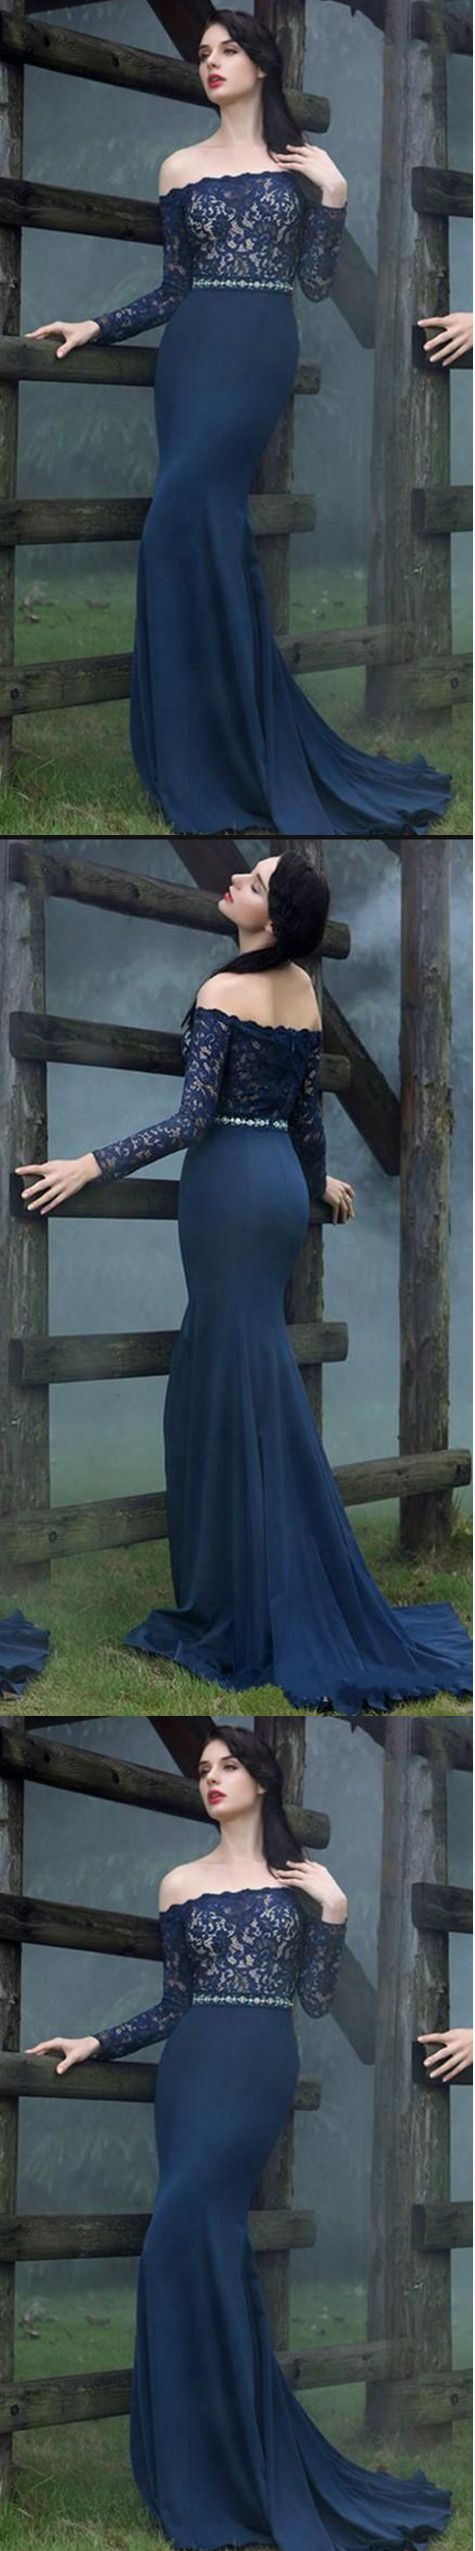 Off the shoulder prom dresseslong sleeves navy prom dressevening